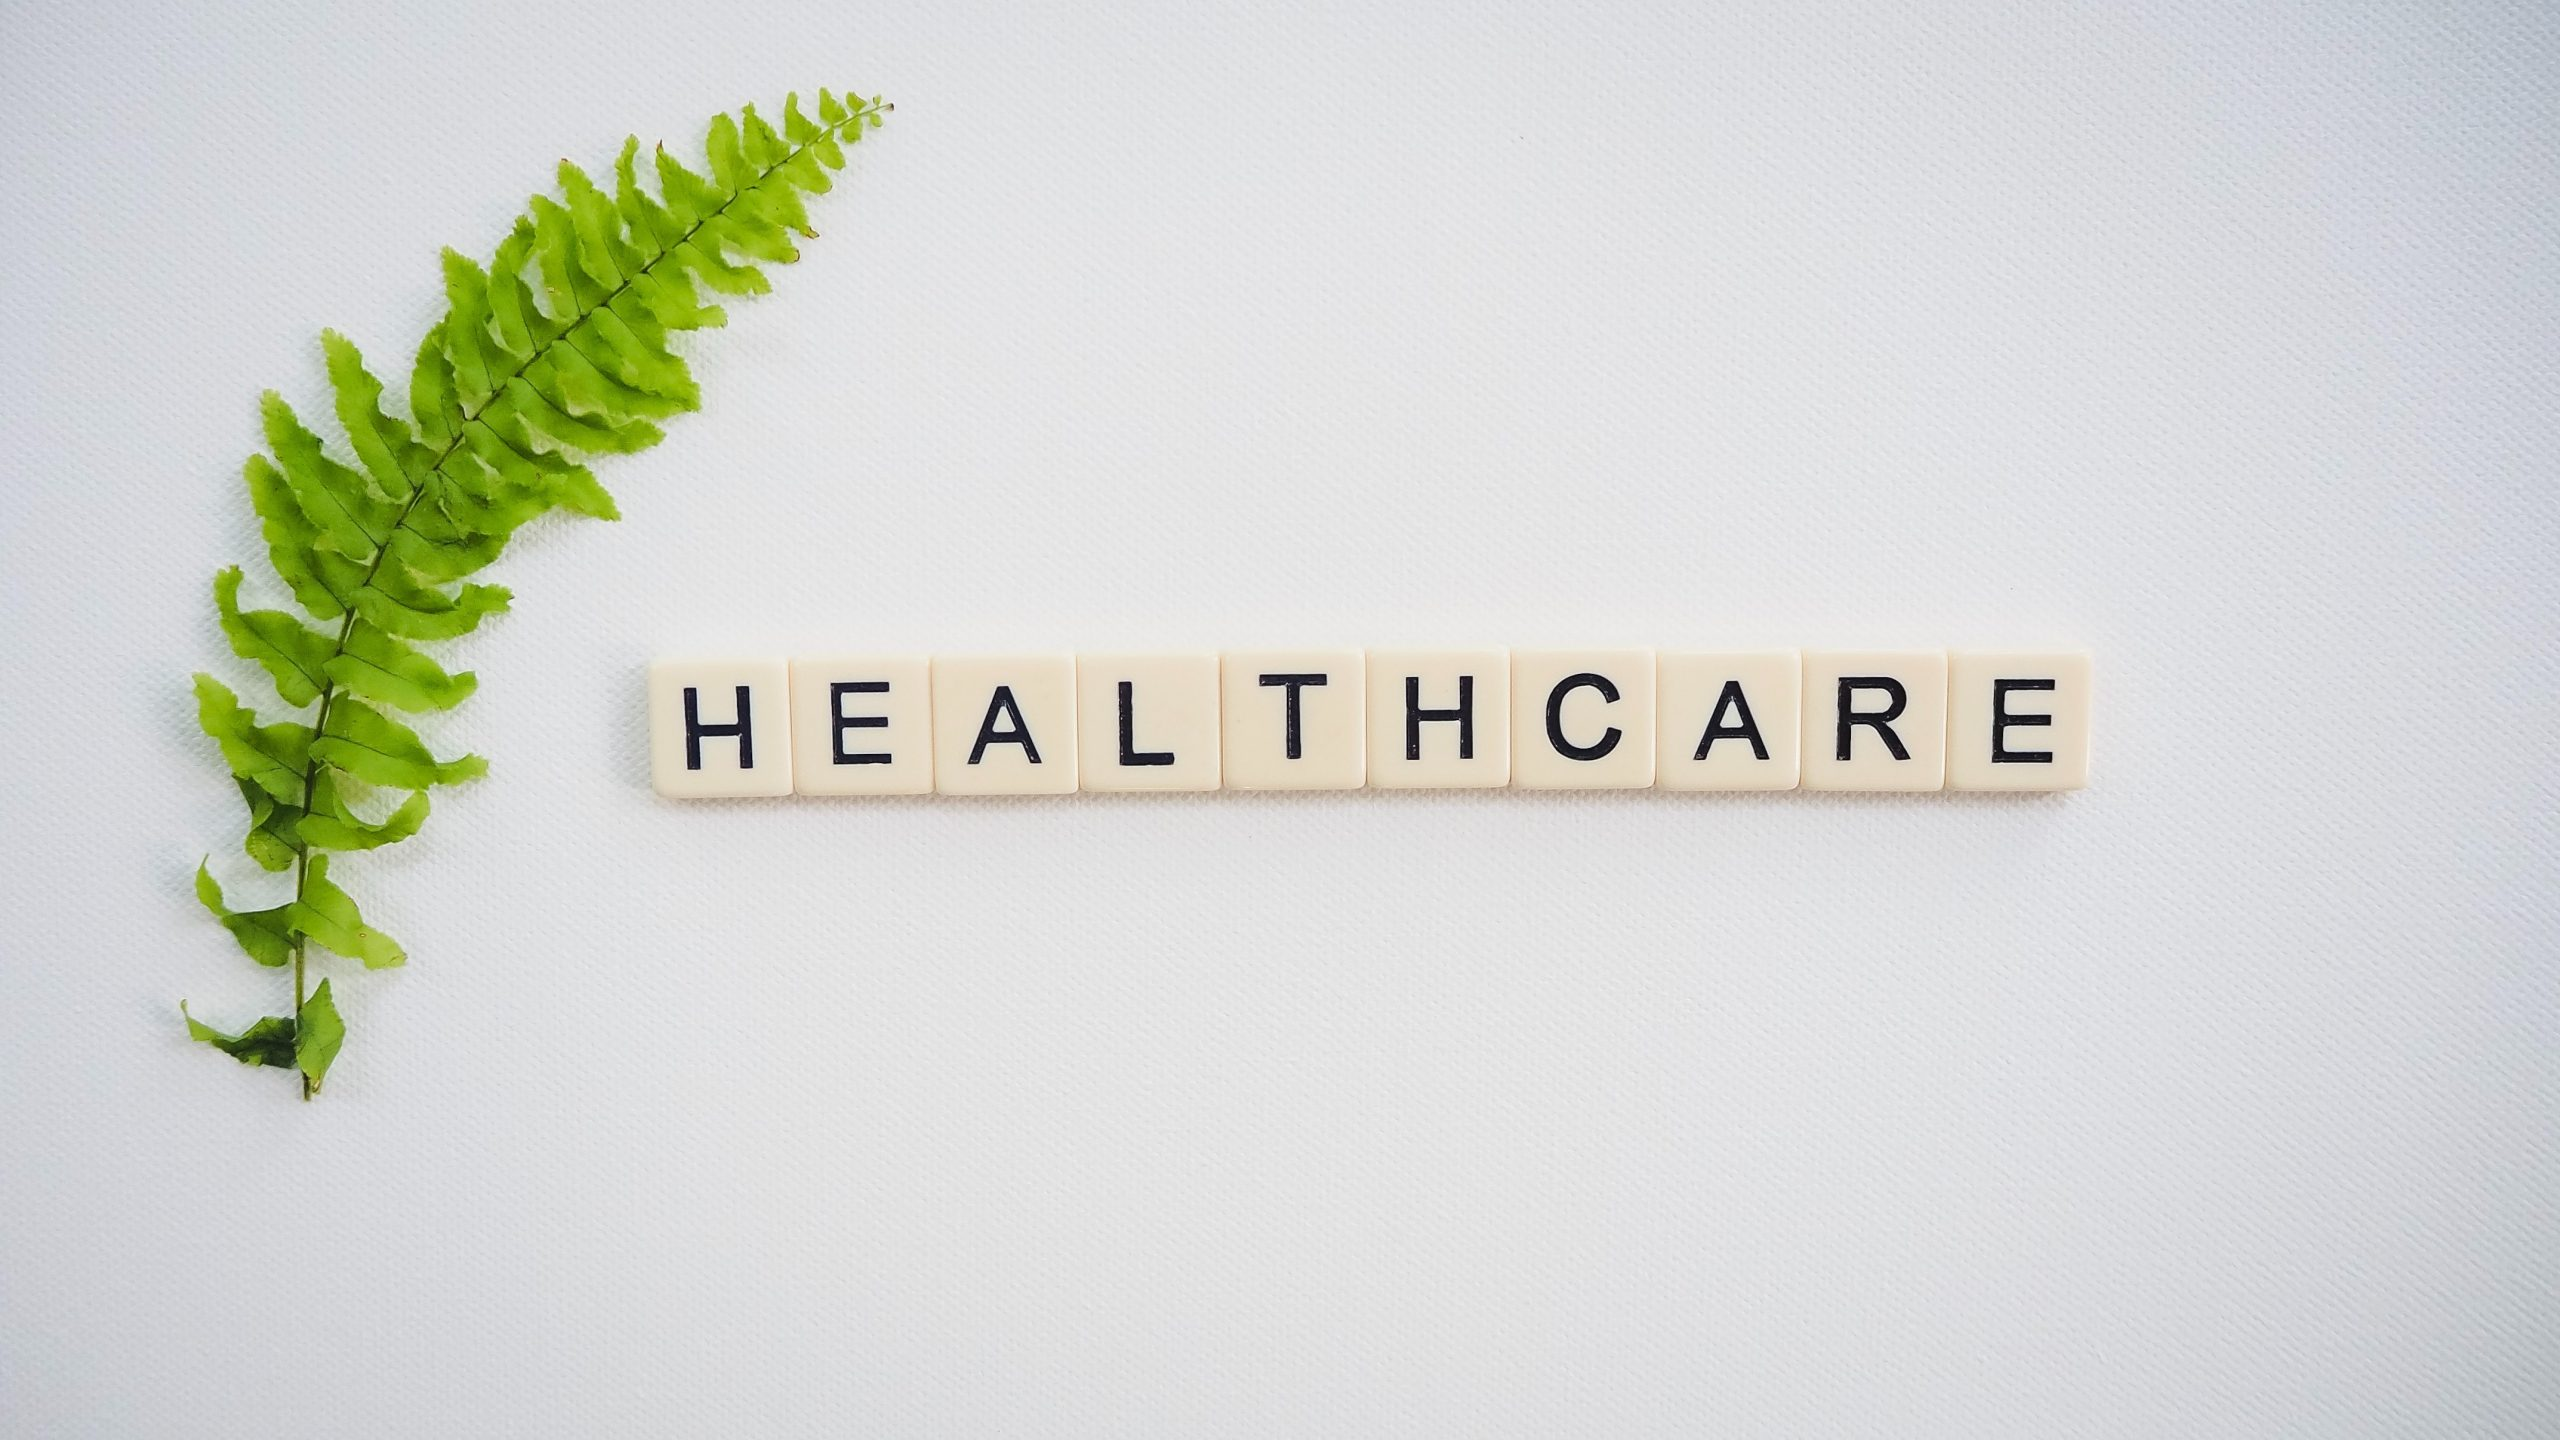 Healthcare spelled out with scrabble pieces